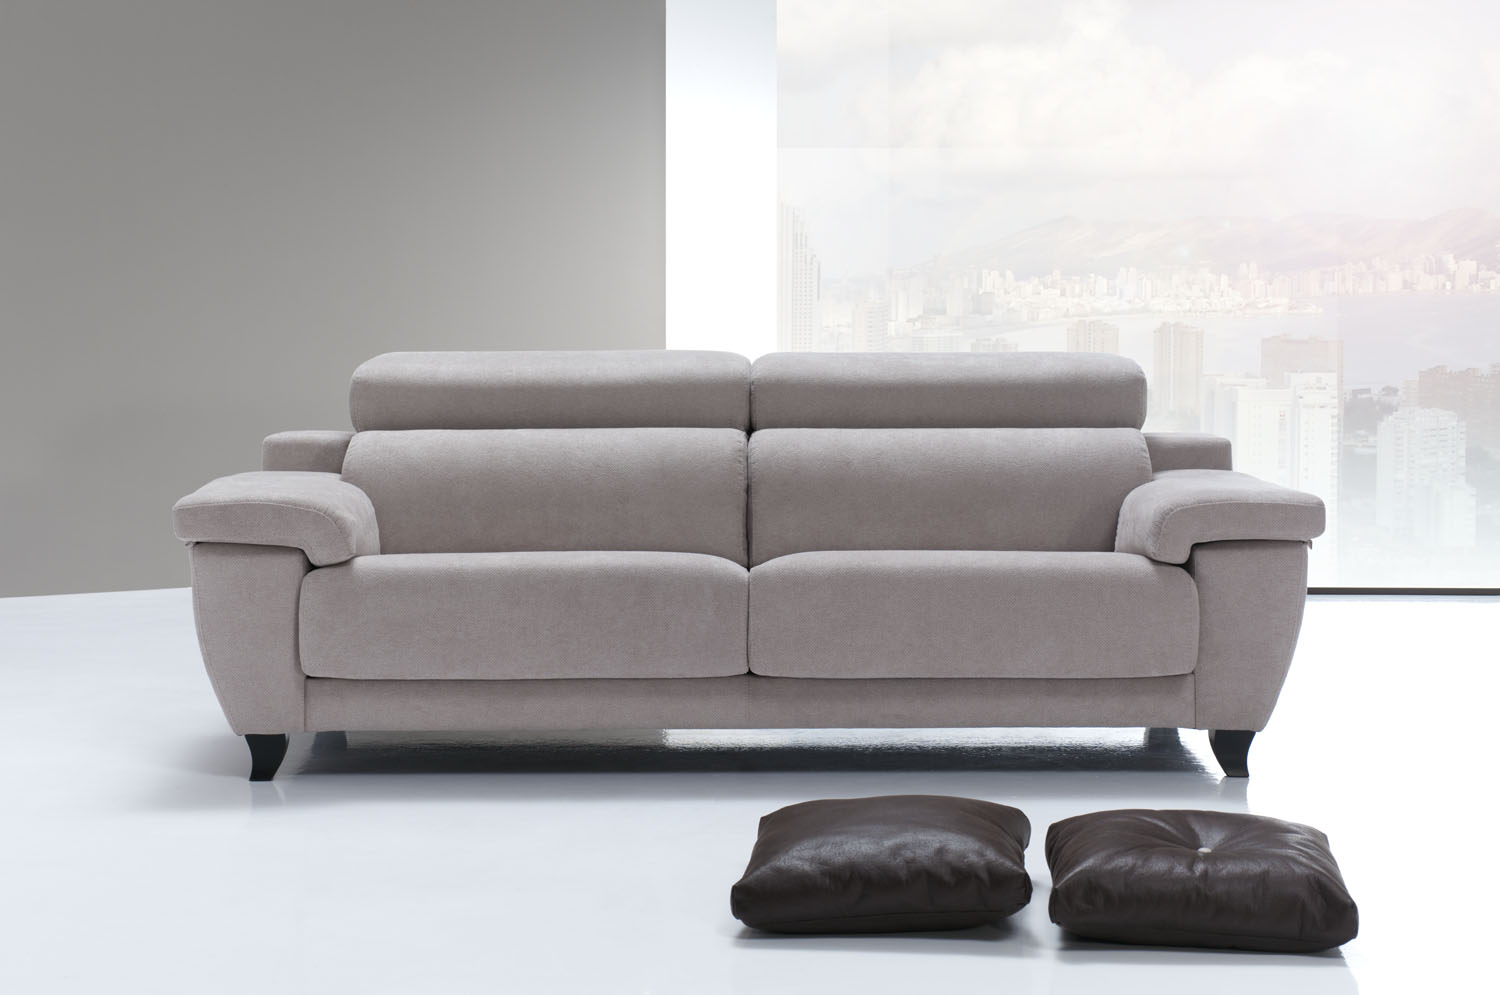 sillon sofas Muebles los barriales. Betty (2)